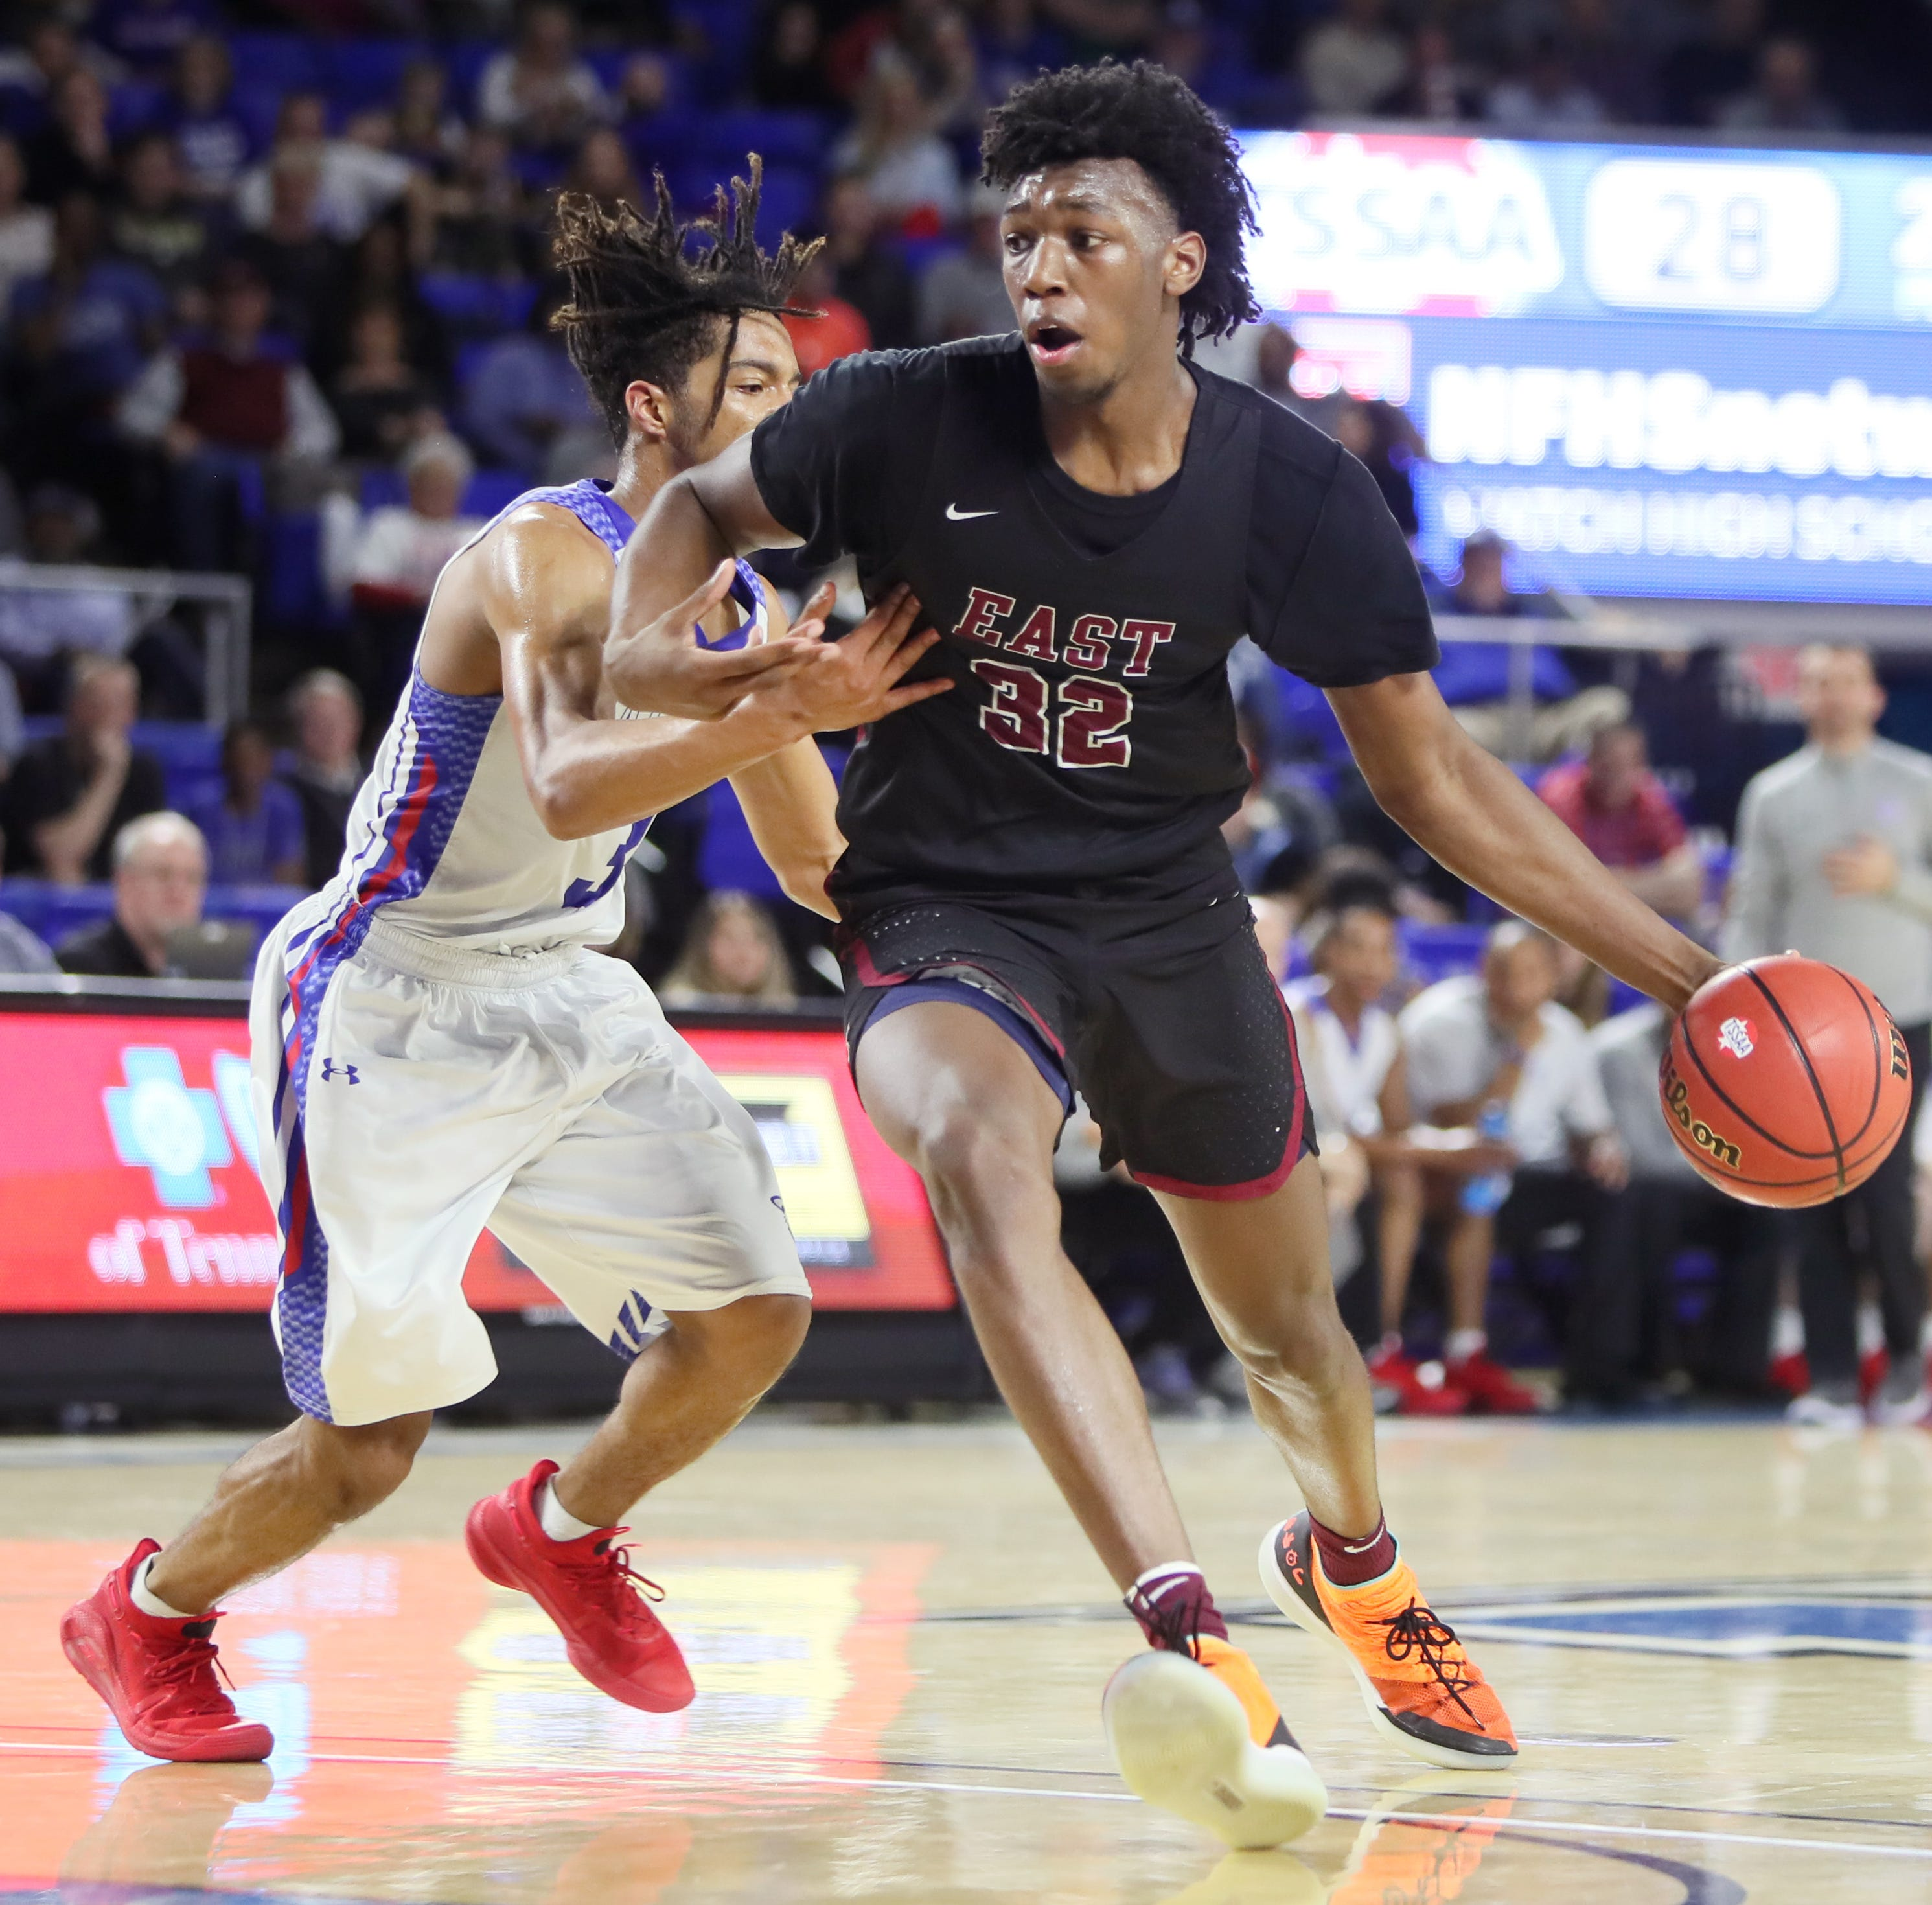 East's James Wiseman wins Morgan Wootten National Player of the Year Award